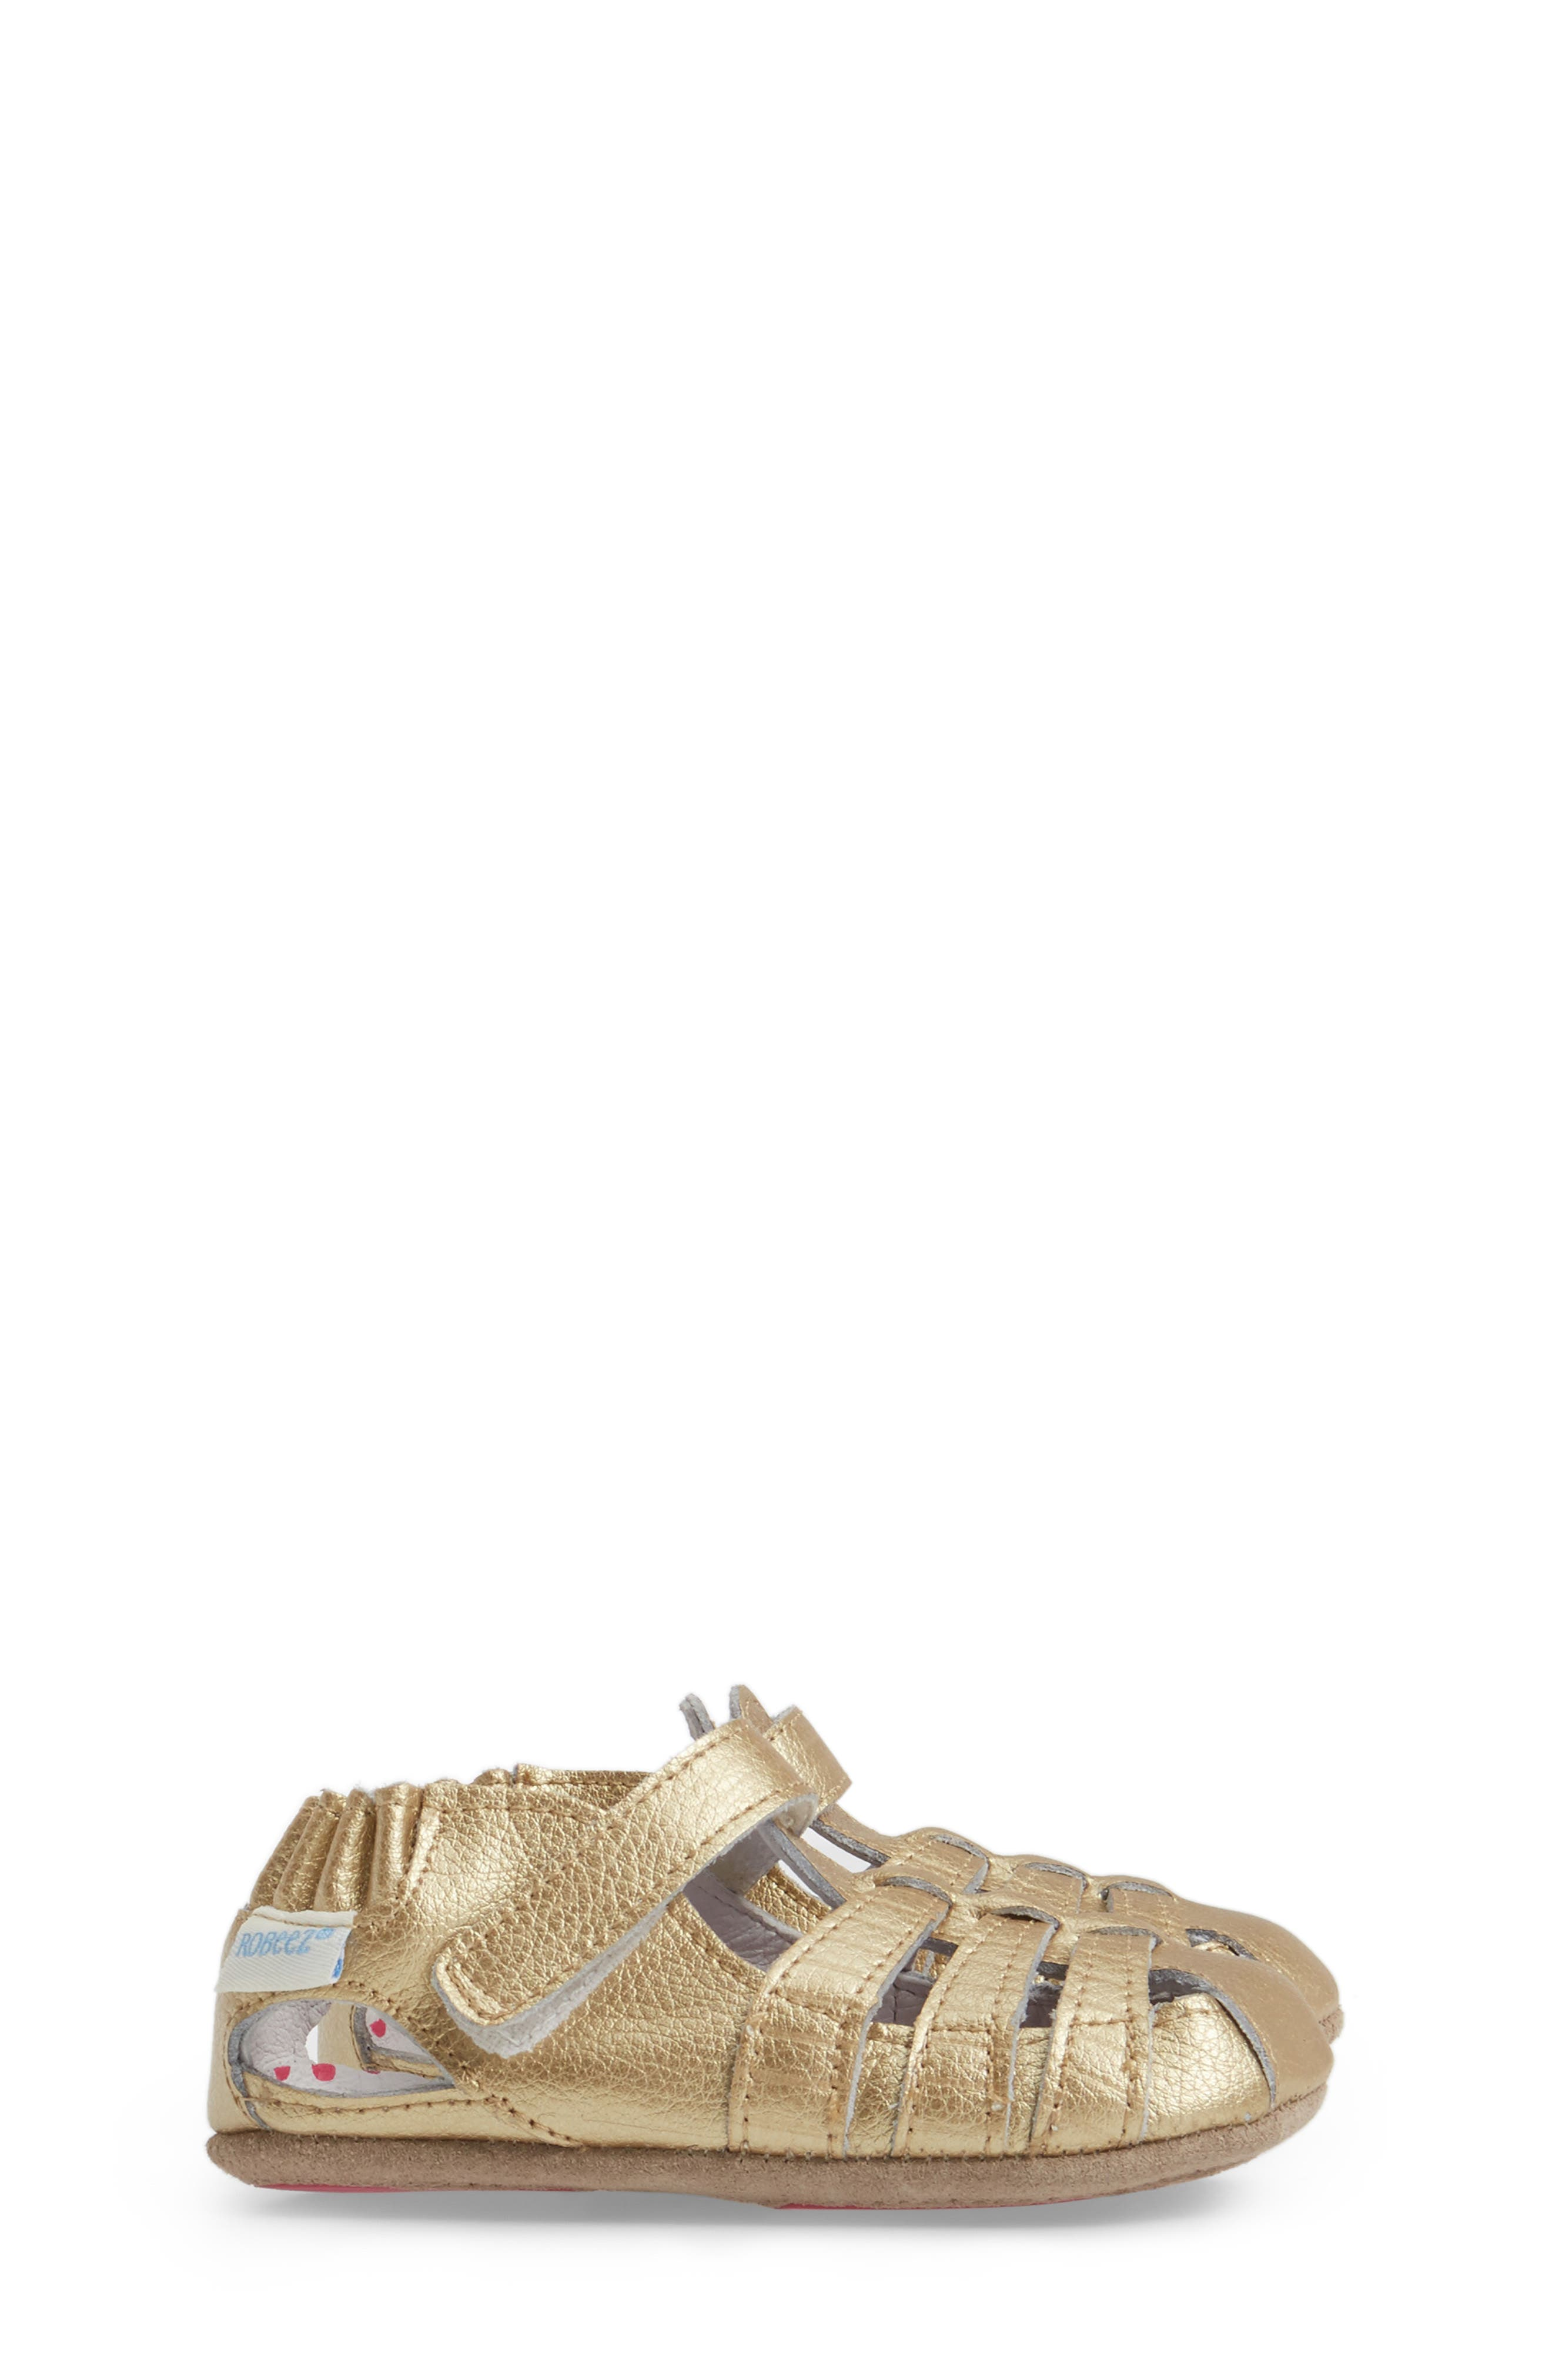 Paris Crib Shoe,                             Alternate thumbnail 3, color,                             Gold